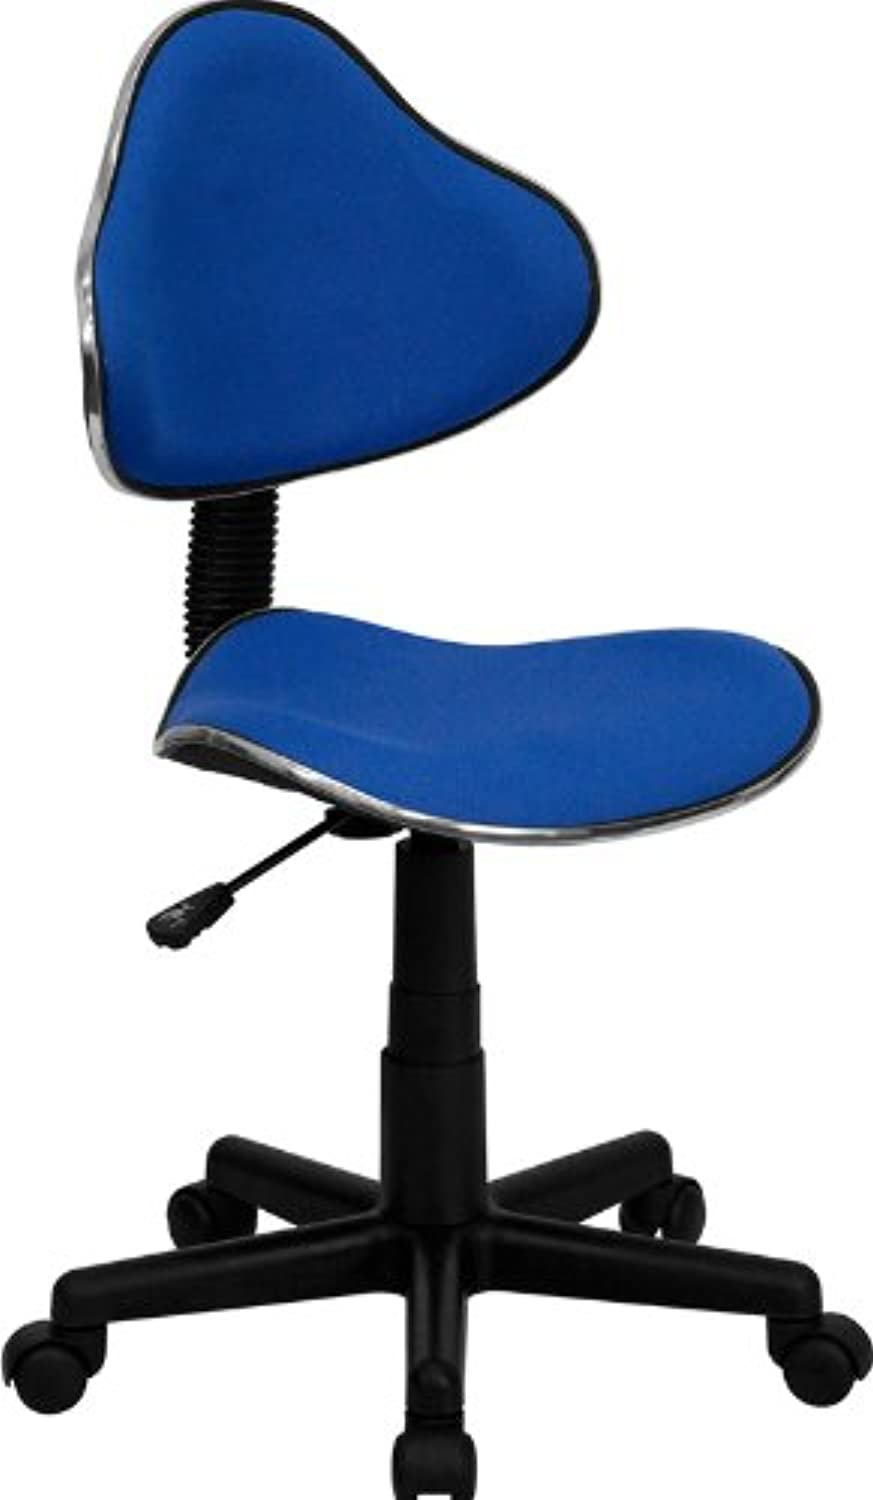 Flash Furniture BT-699-blueE-GG bluee Fabric Ergonomic Task Chair